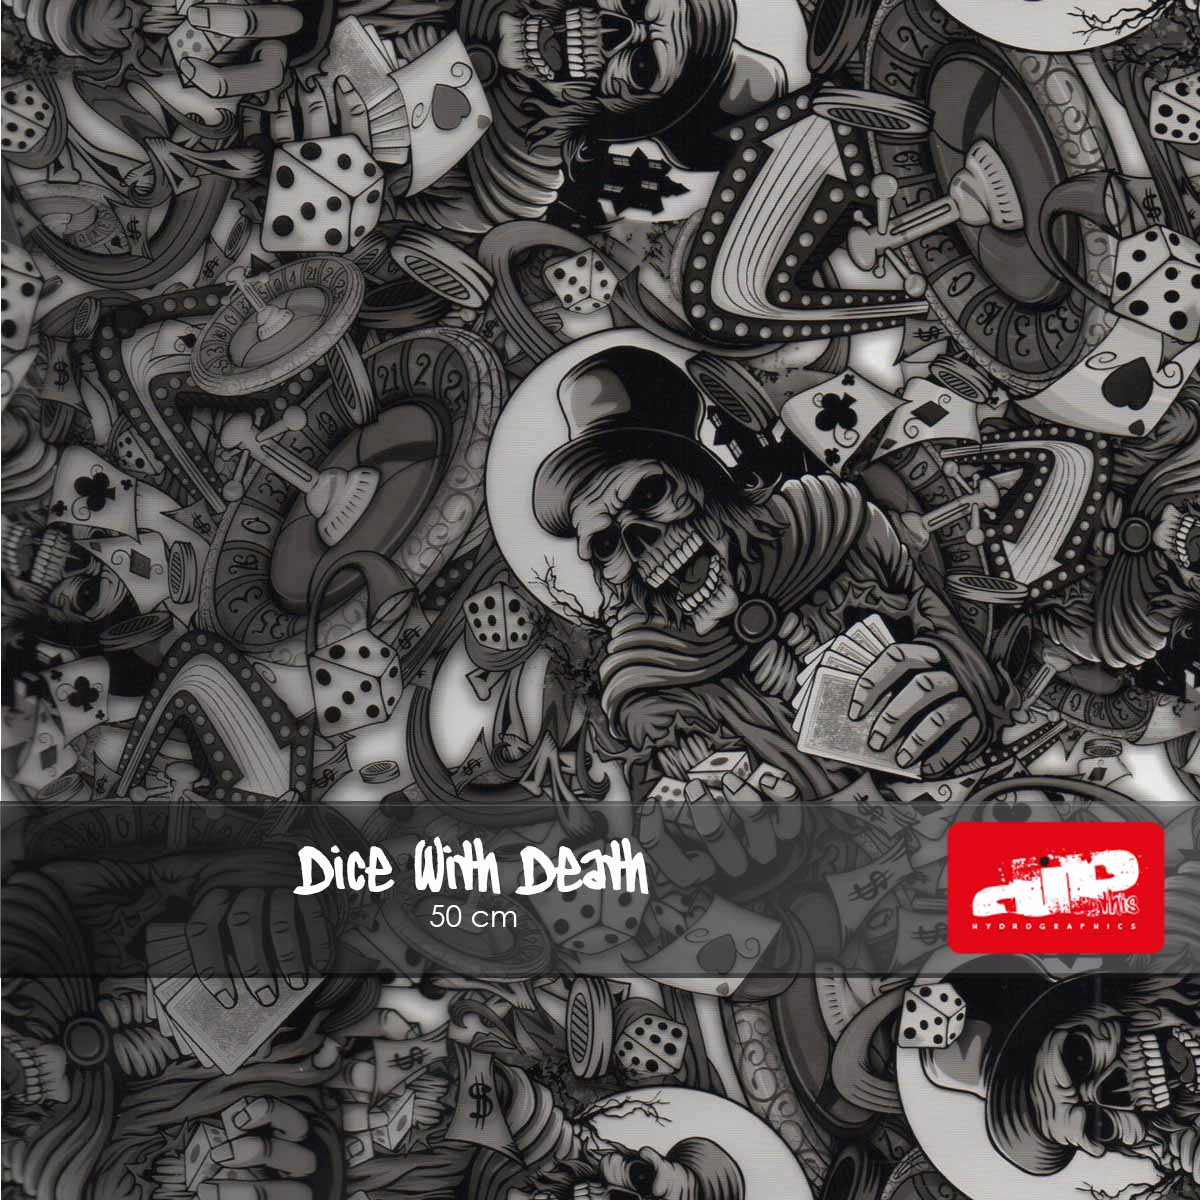 Dice With Death Dip Kit